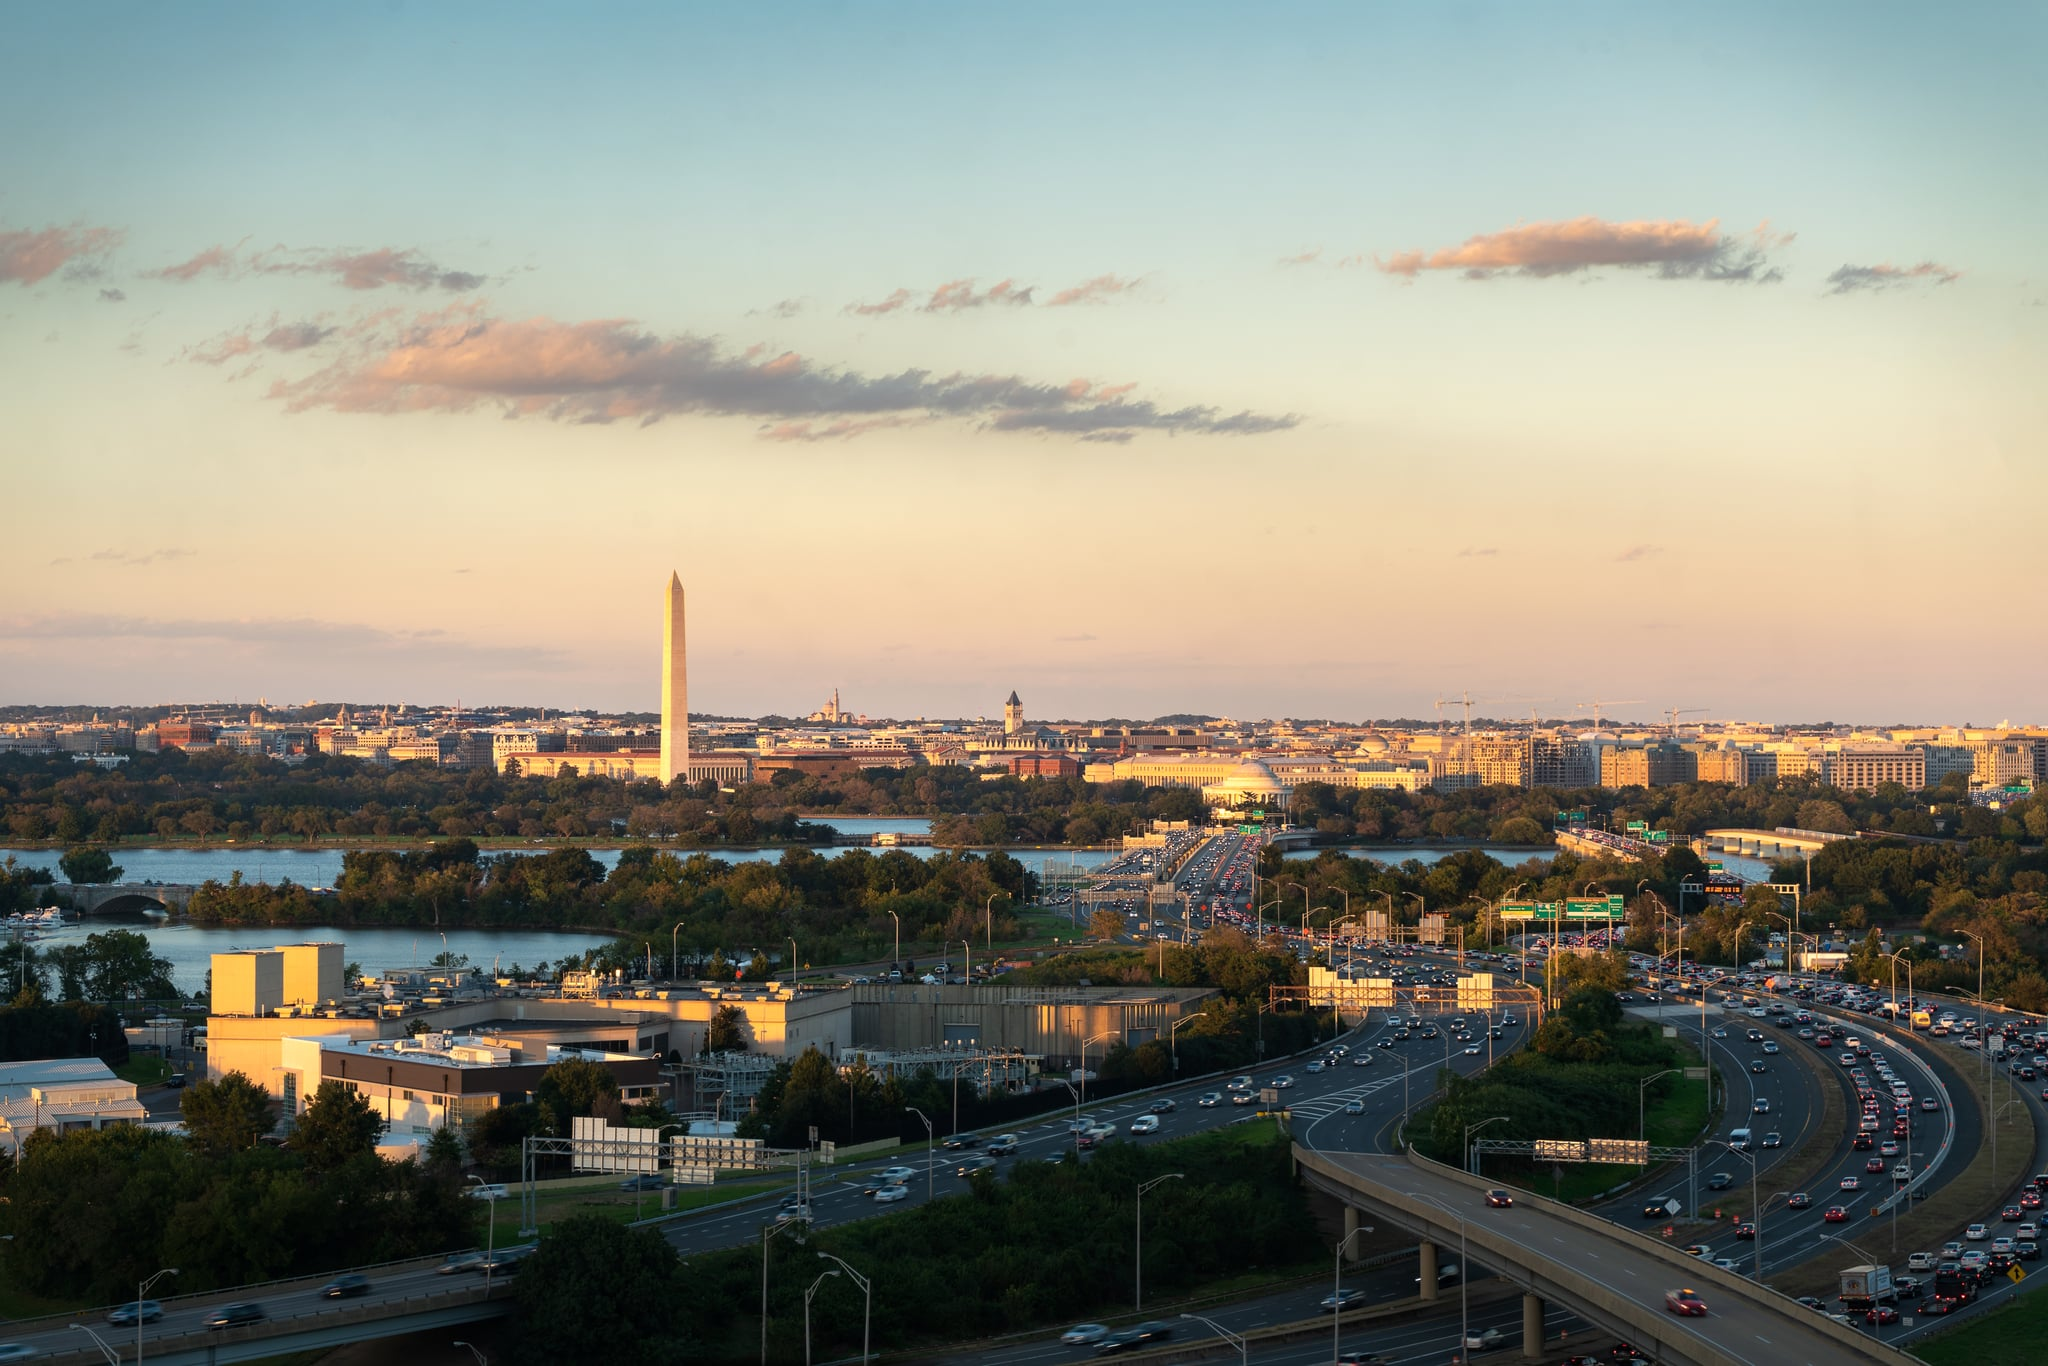 Washington D.C. skyline with highways and monuments in USA.